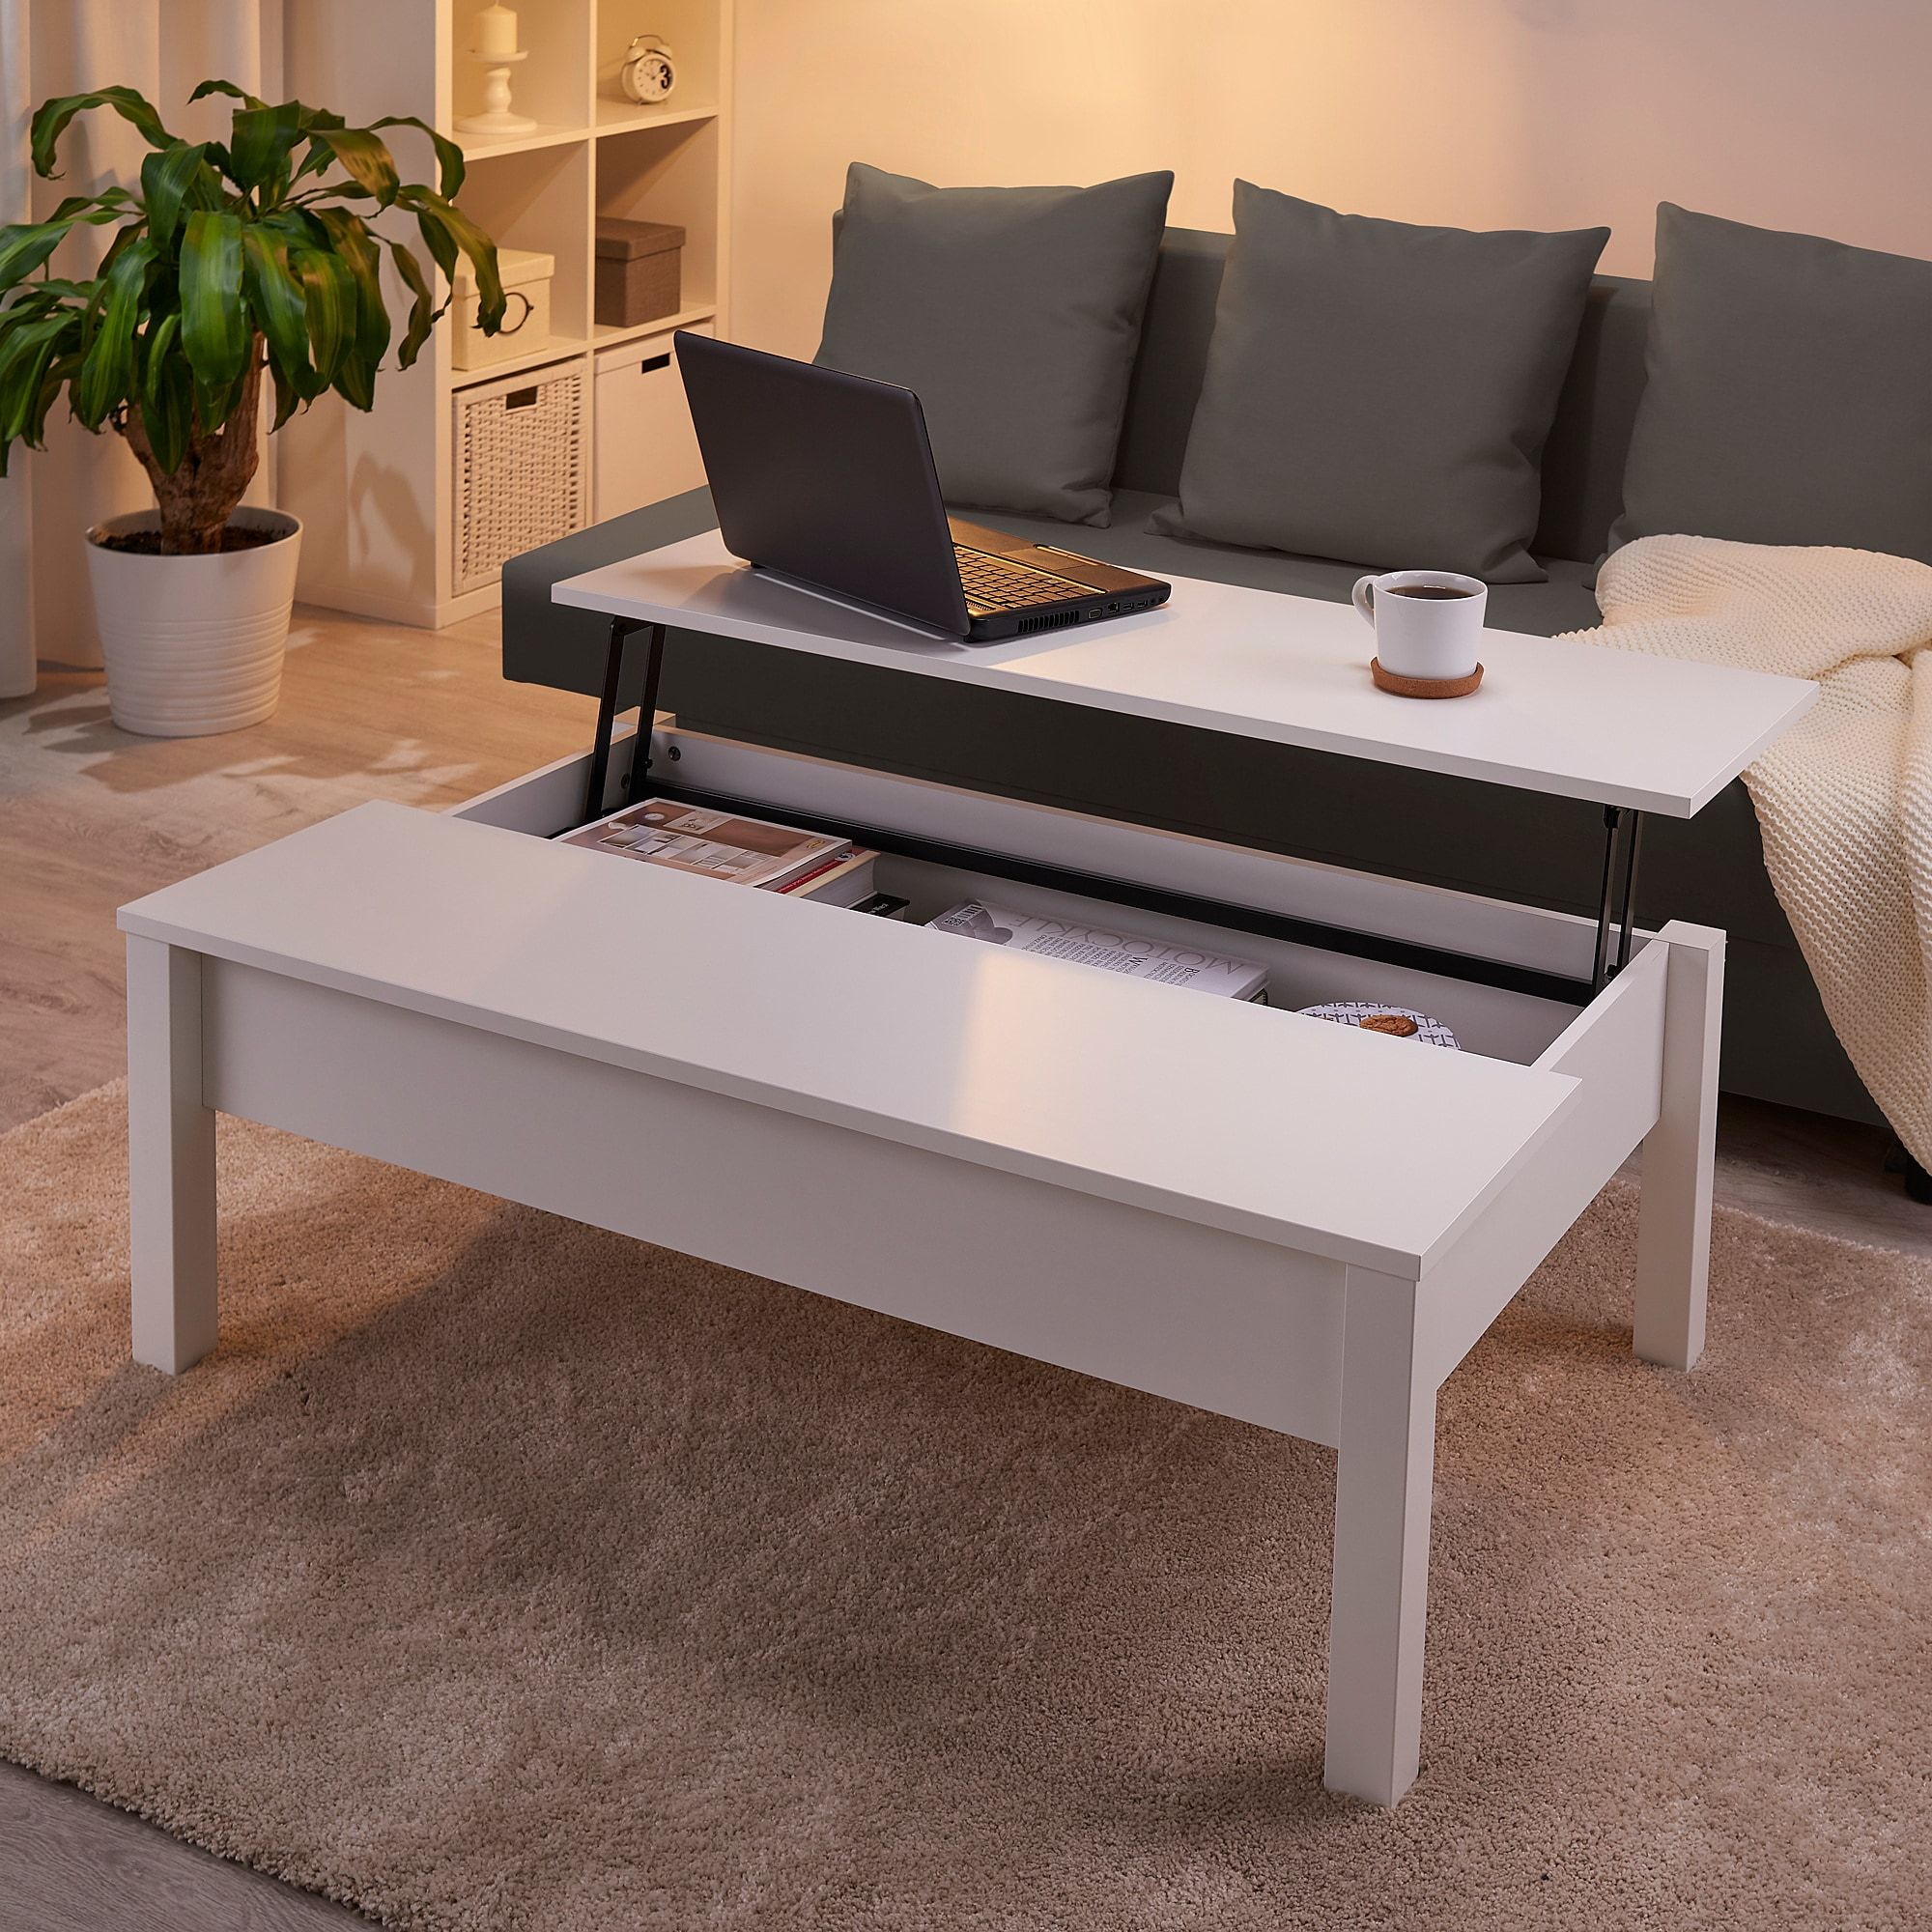 """TRULSTORP Coffee table white 45 1/4x27 1/2 """" in 2020"""